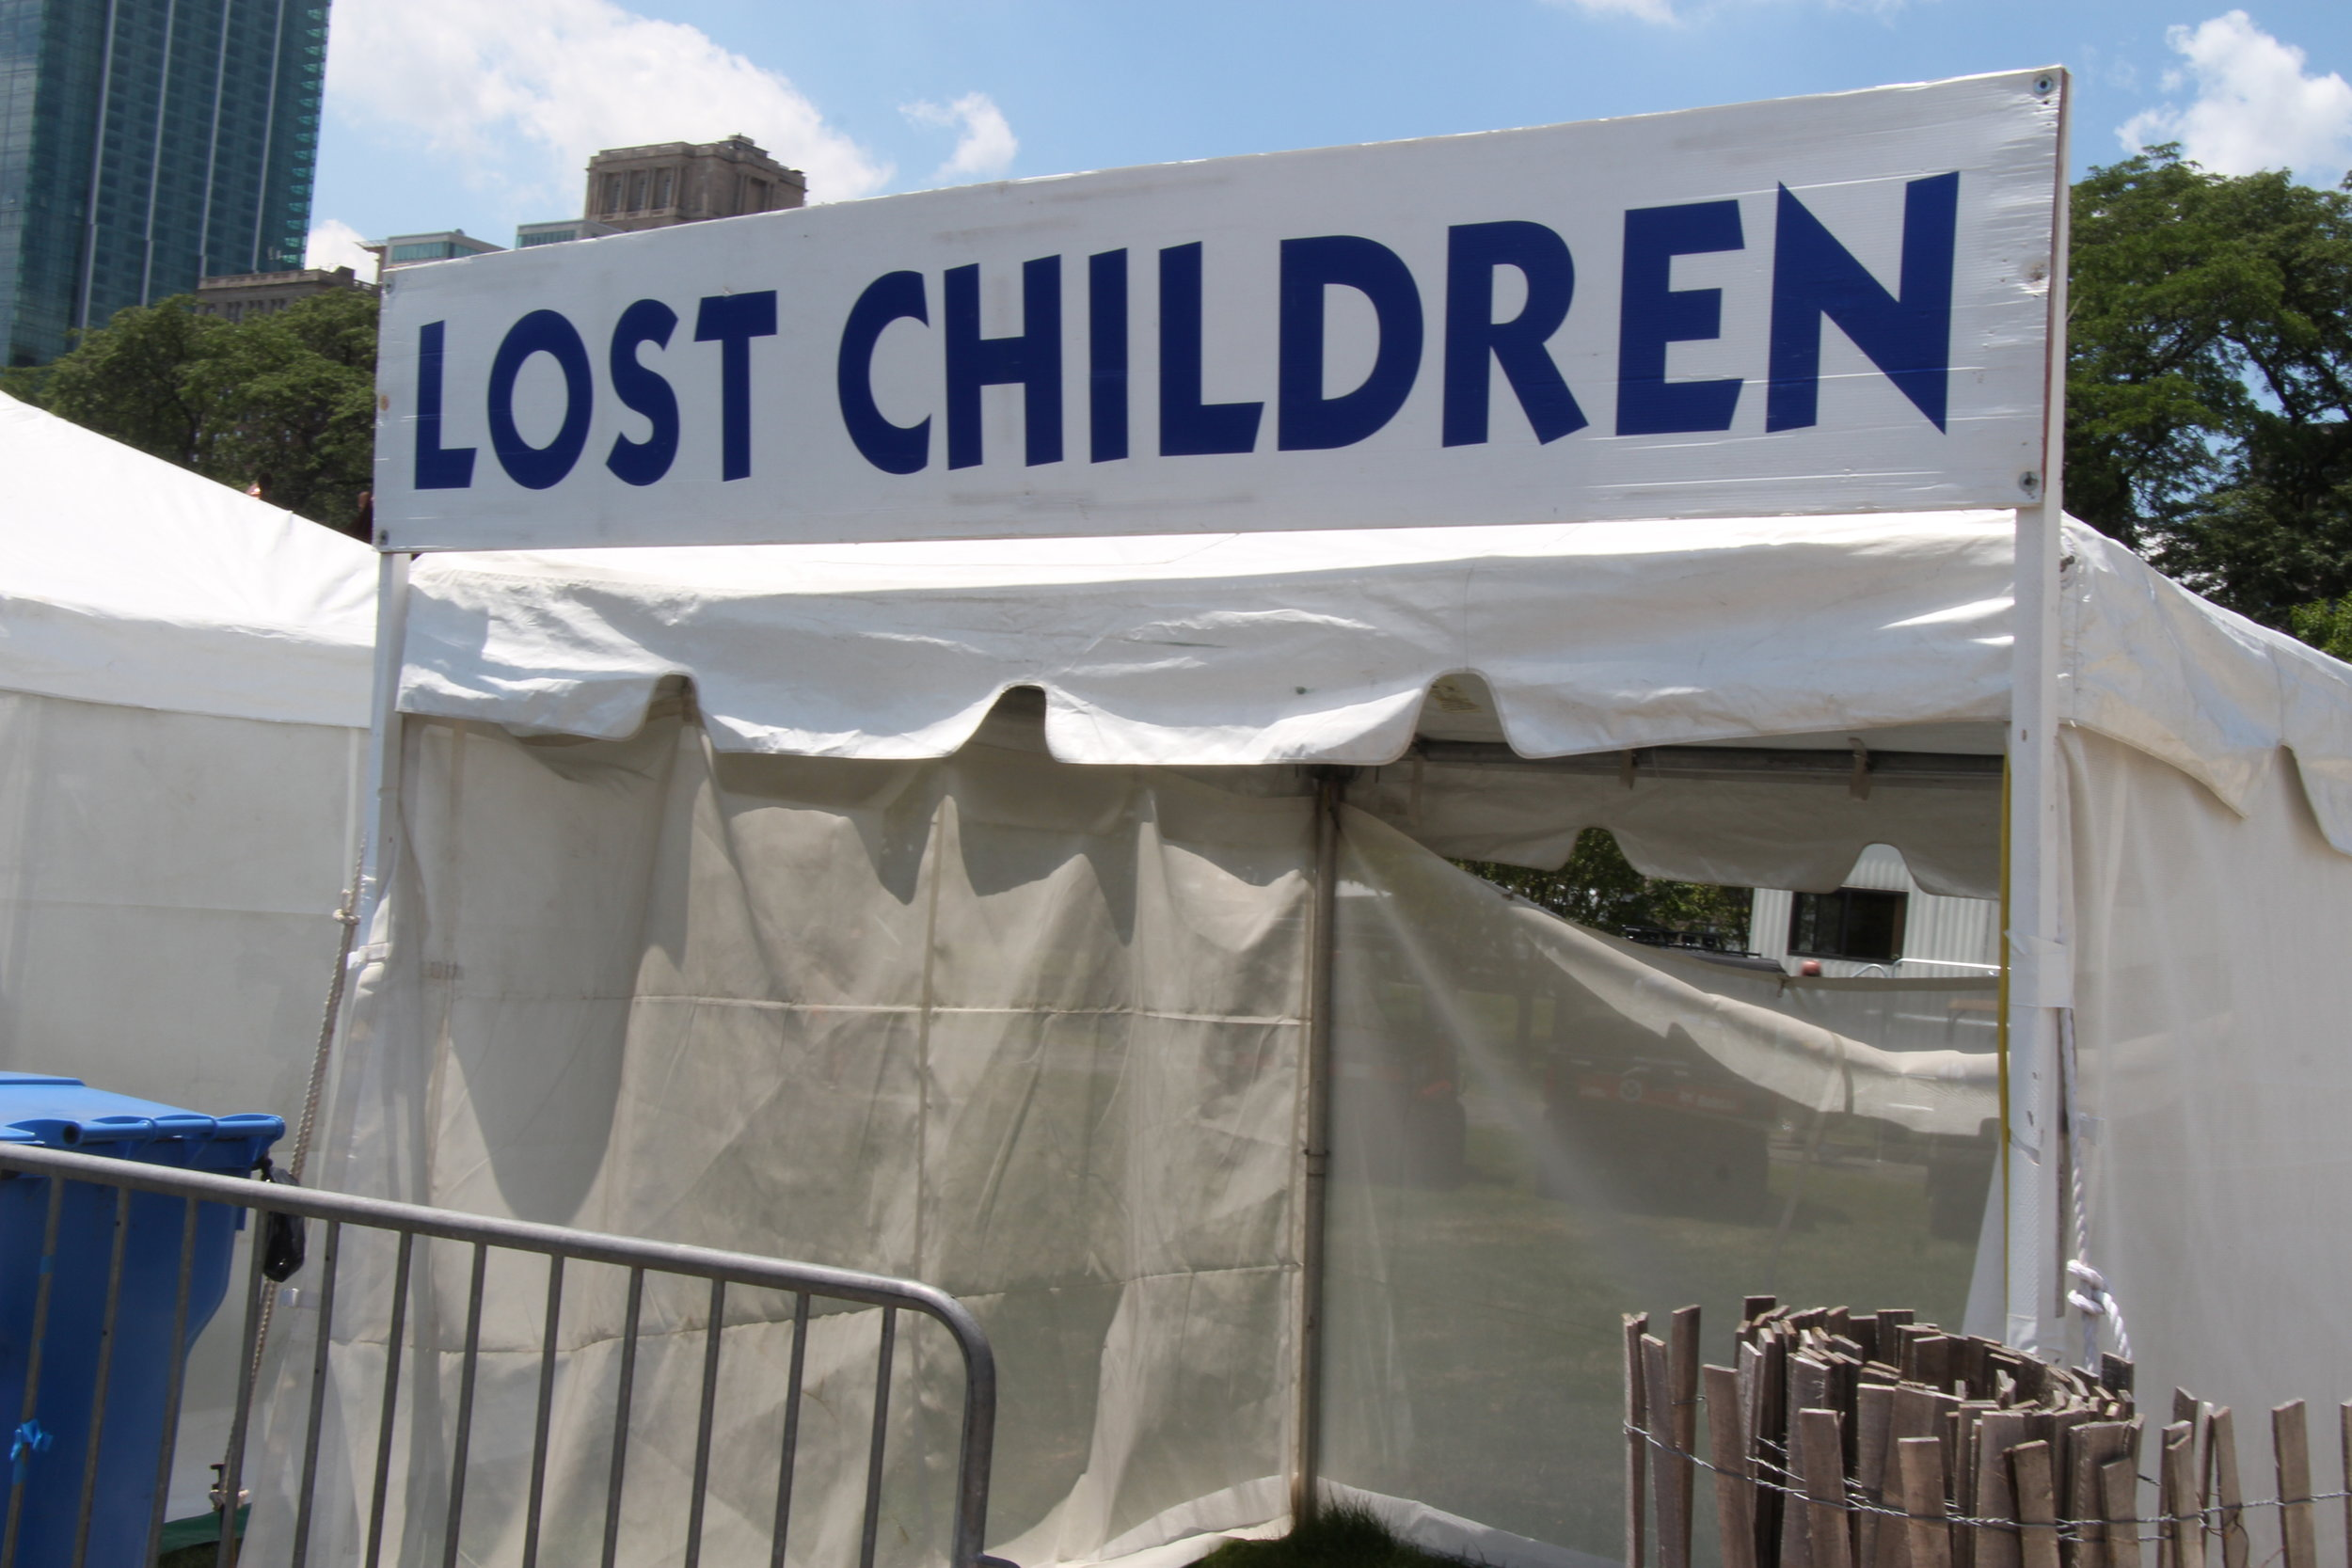 The Lost Children area that was located behind the Ferris Wheel at The Taste. Photo by Diana Adeniyi